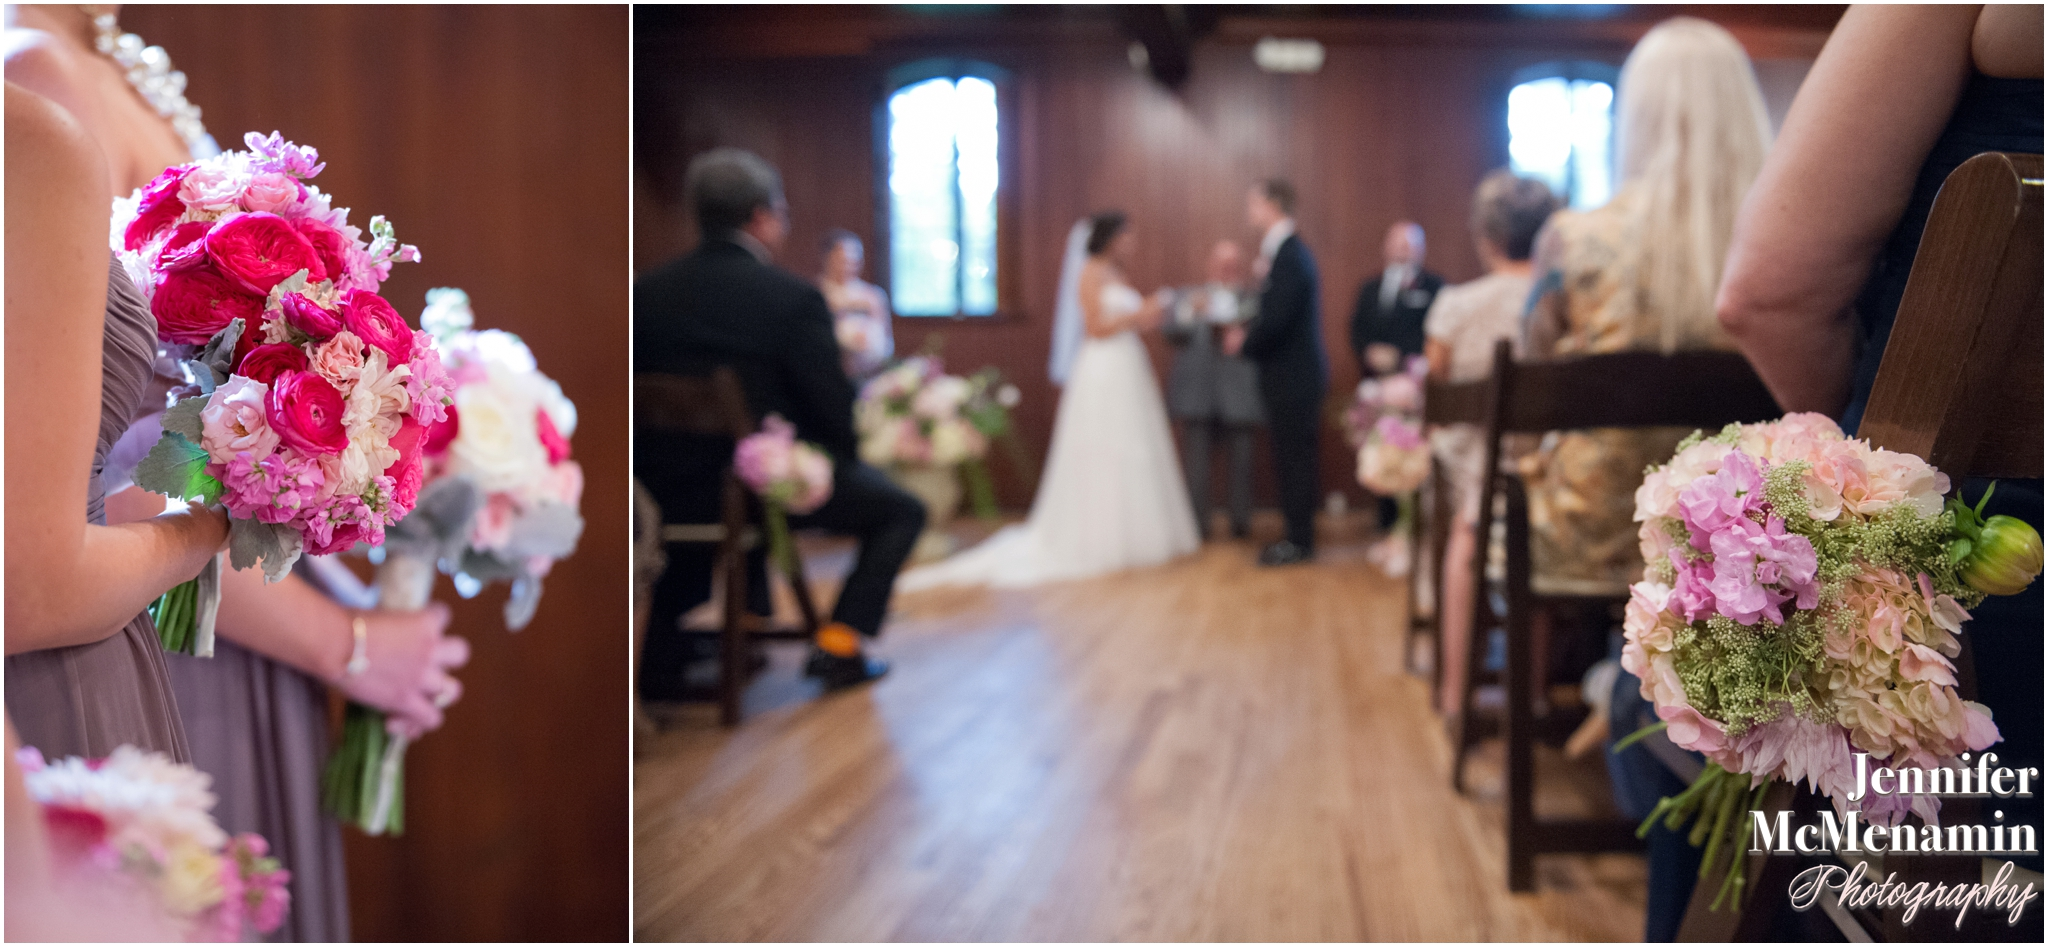 0081-BlumWilliams_03043-0570_JenniferMcMenaminPhotography_Evergreen-Museum-Carriage-House_Baltimore-wedding-photography_Baltimore-wedding-photographer